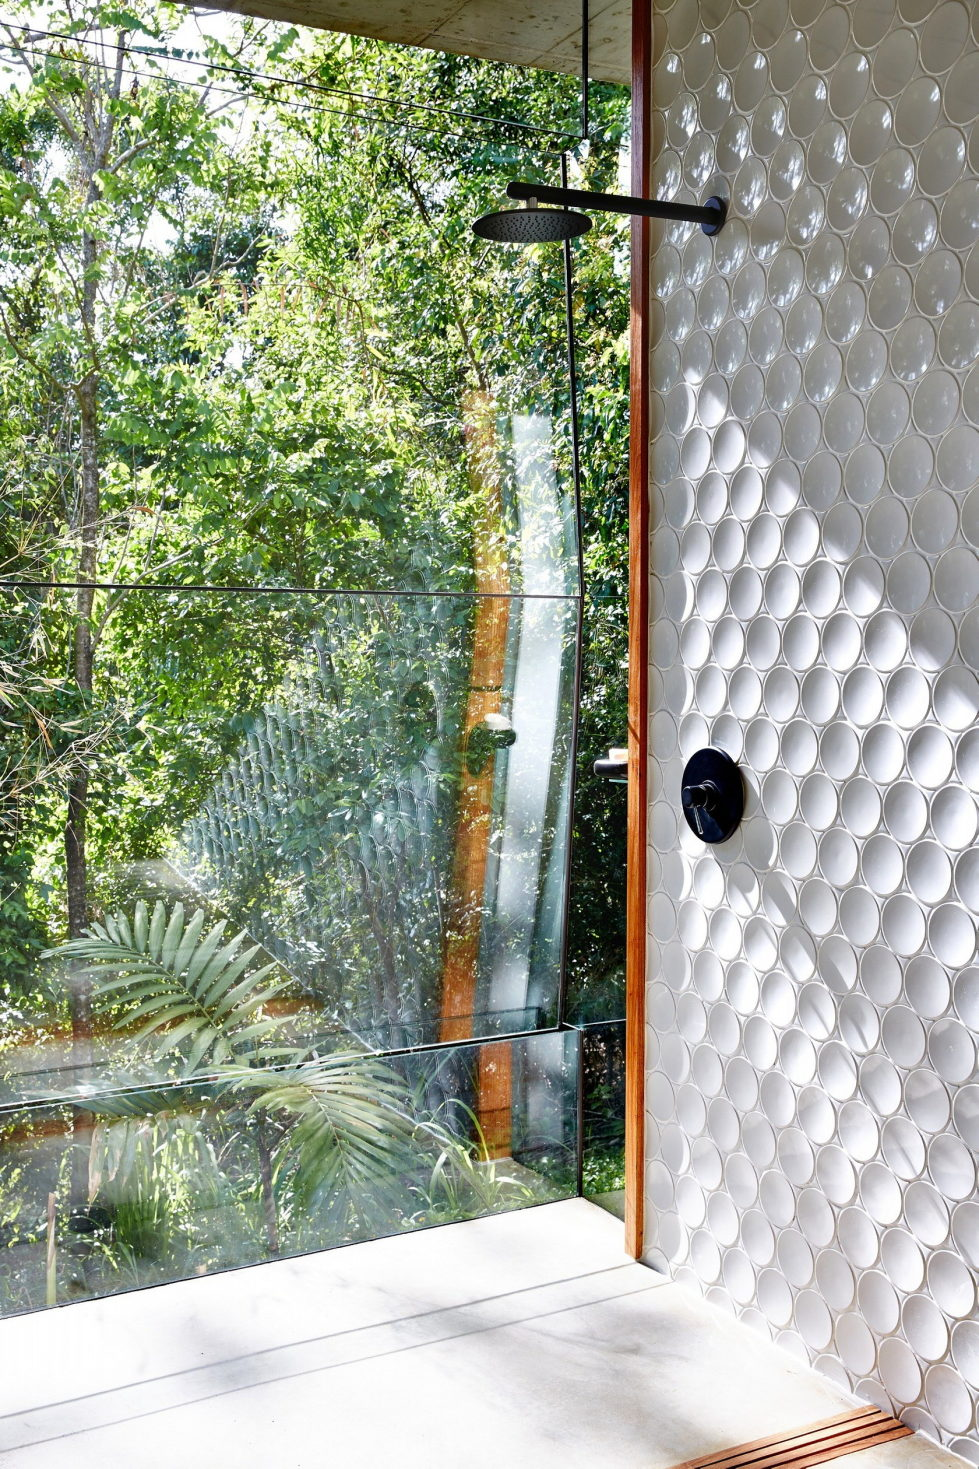 The glass house Planchonella in the tropical forest from Jesse Bennett Architect 22